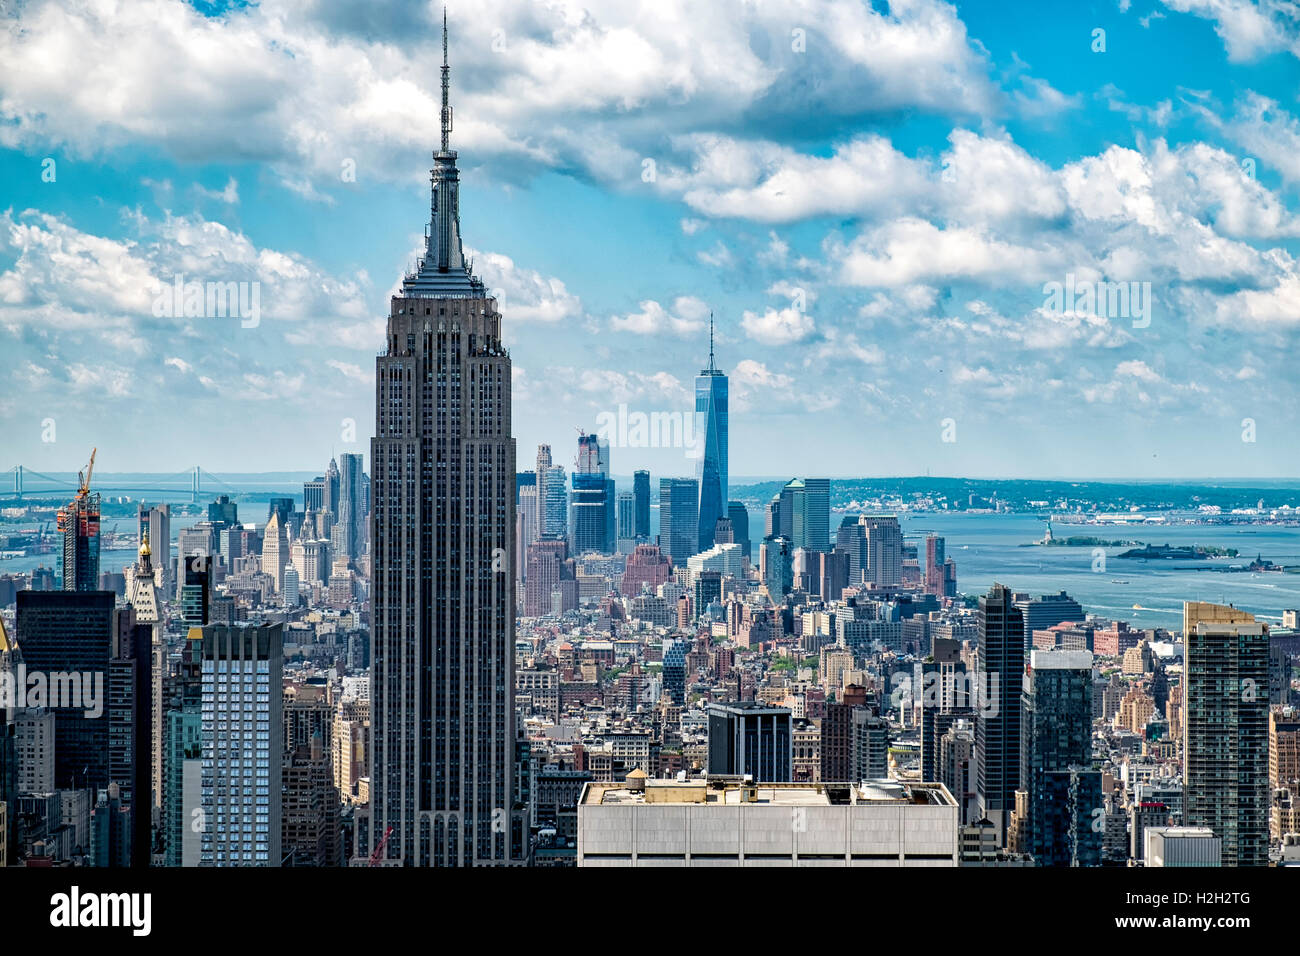 Overview of Manhattan New York city, empire state in the forefront with the rest of manhattan behind on a partially - Stock Image